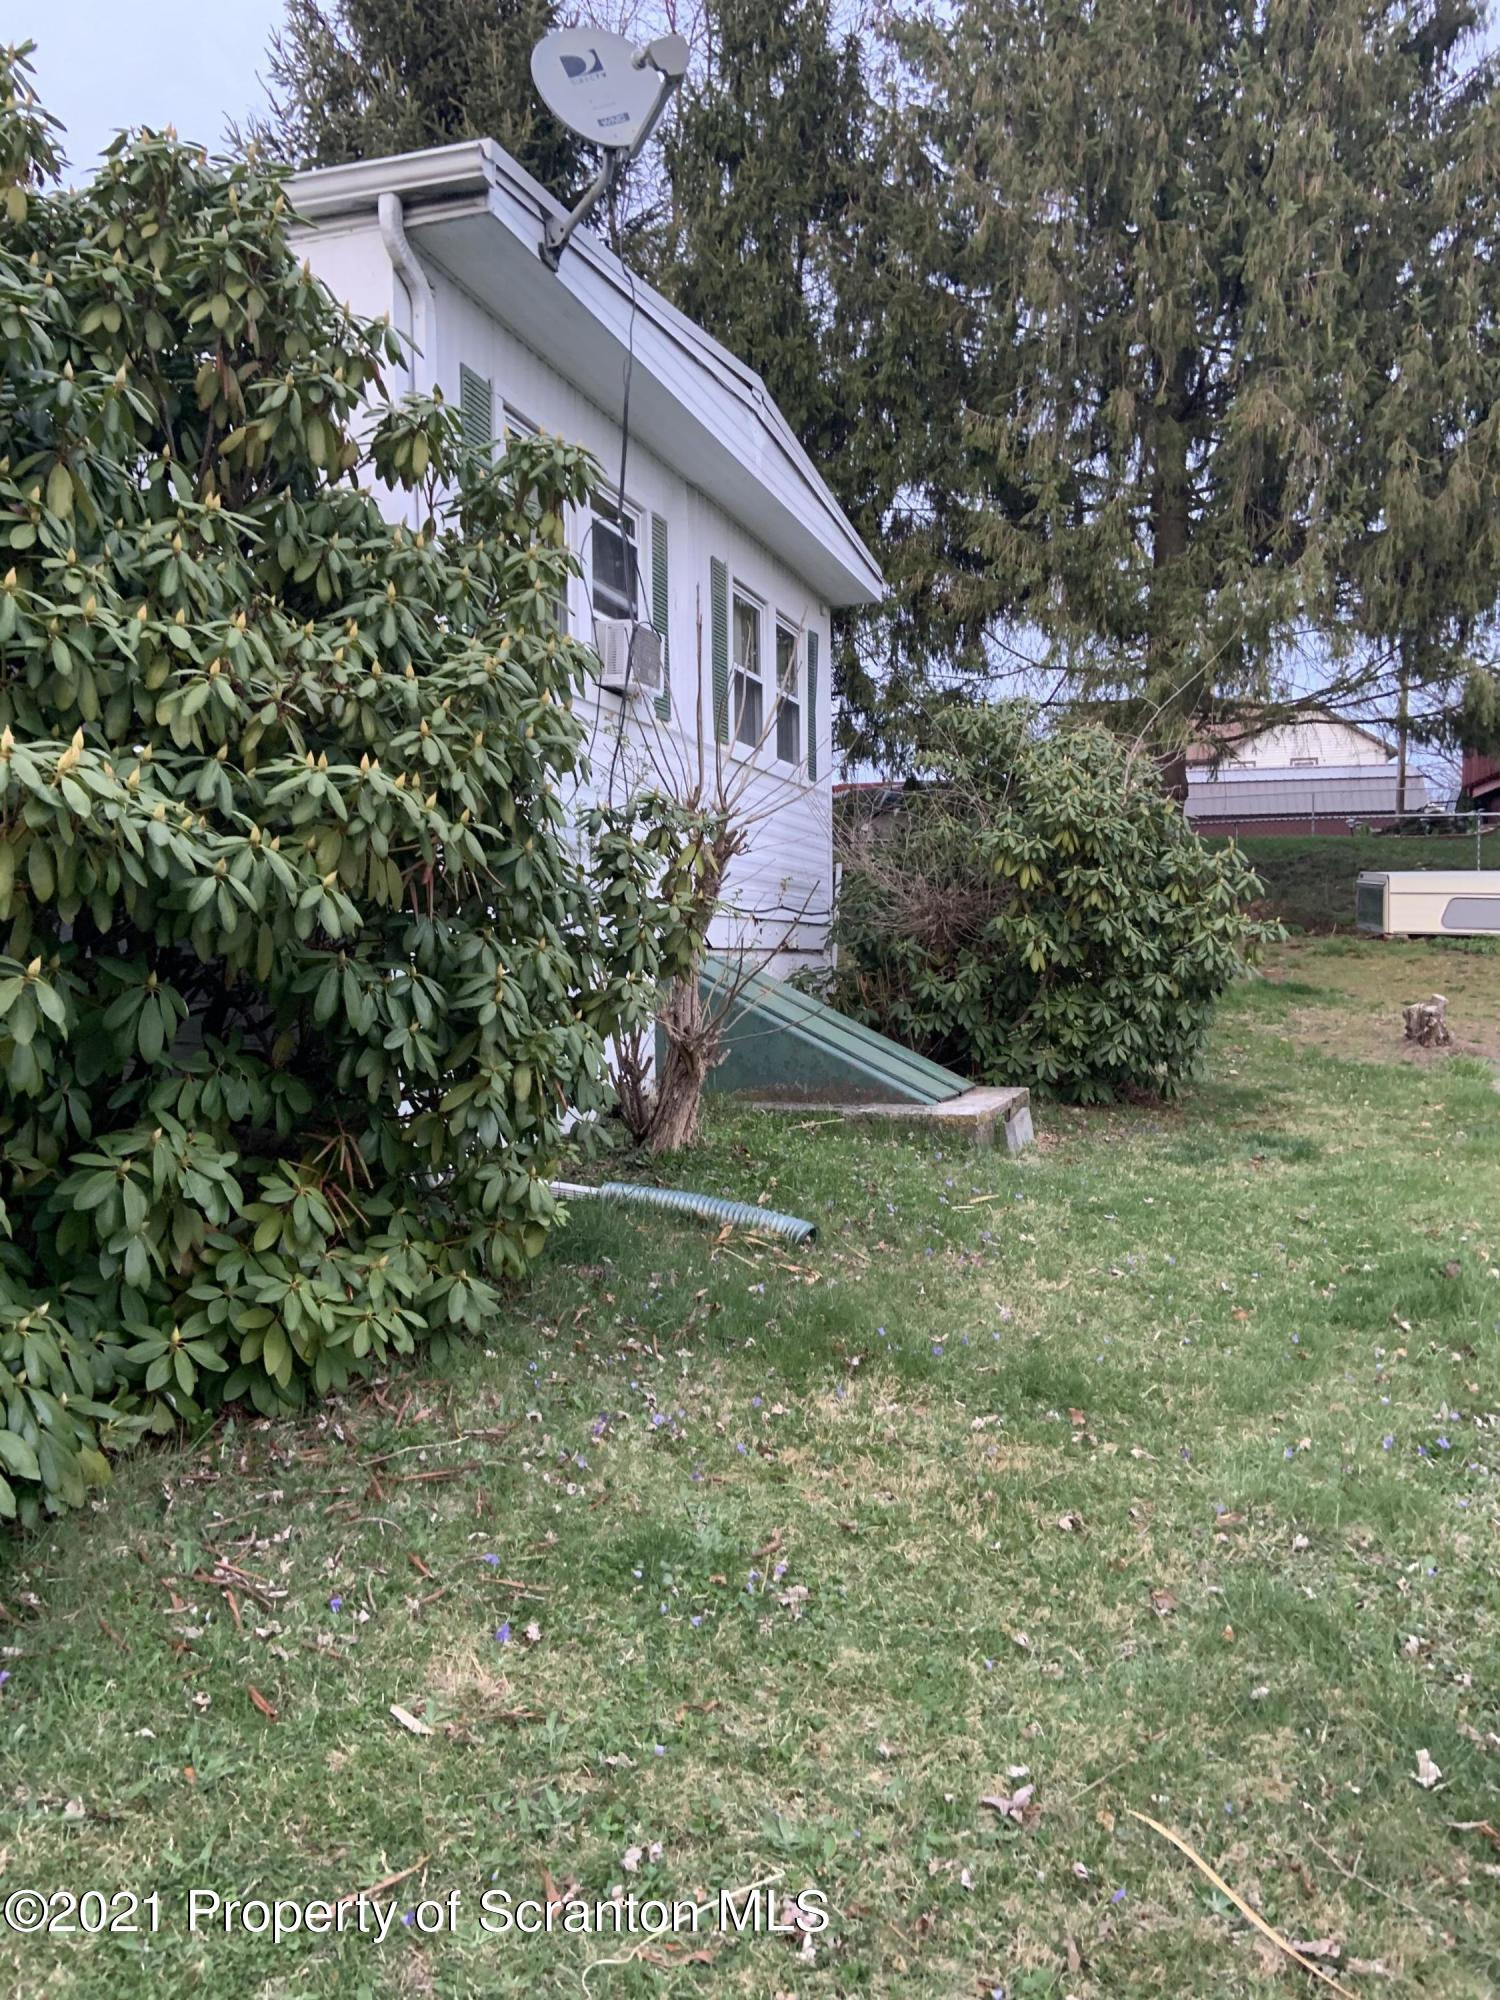 423 Carter, Old Forge, Pennsylvania 18518, 3 Bedrooms Bedrooms, 6 Rooms Rooms,2 BathroomsBathrooms,Single Family,For Sale,Carter,21-1184